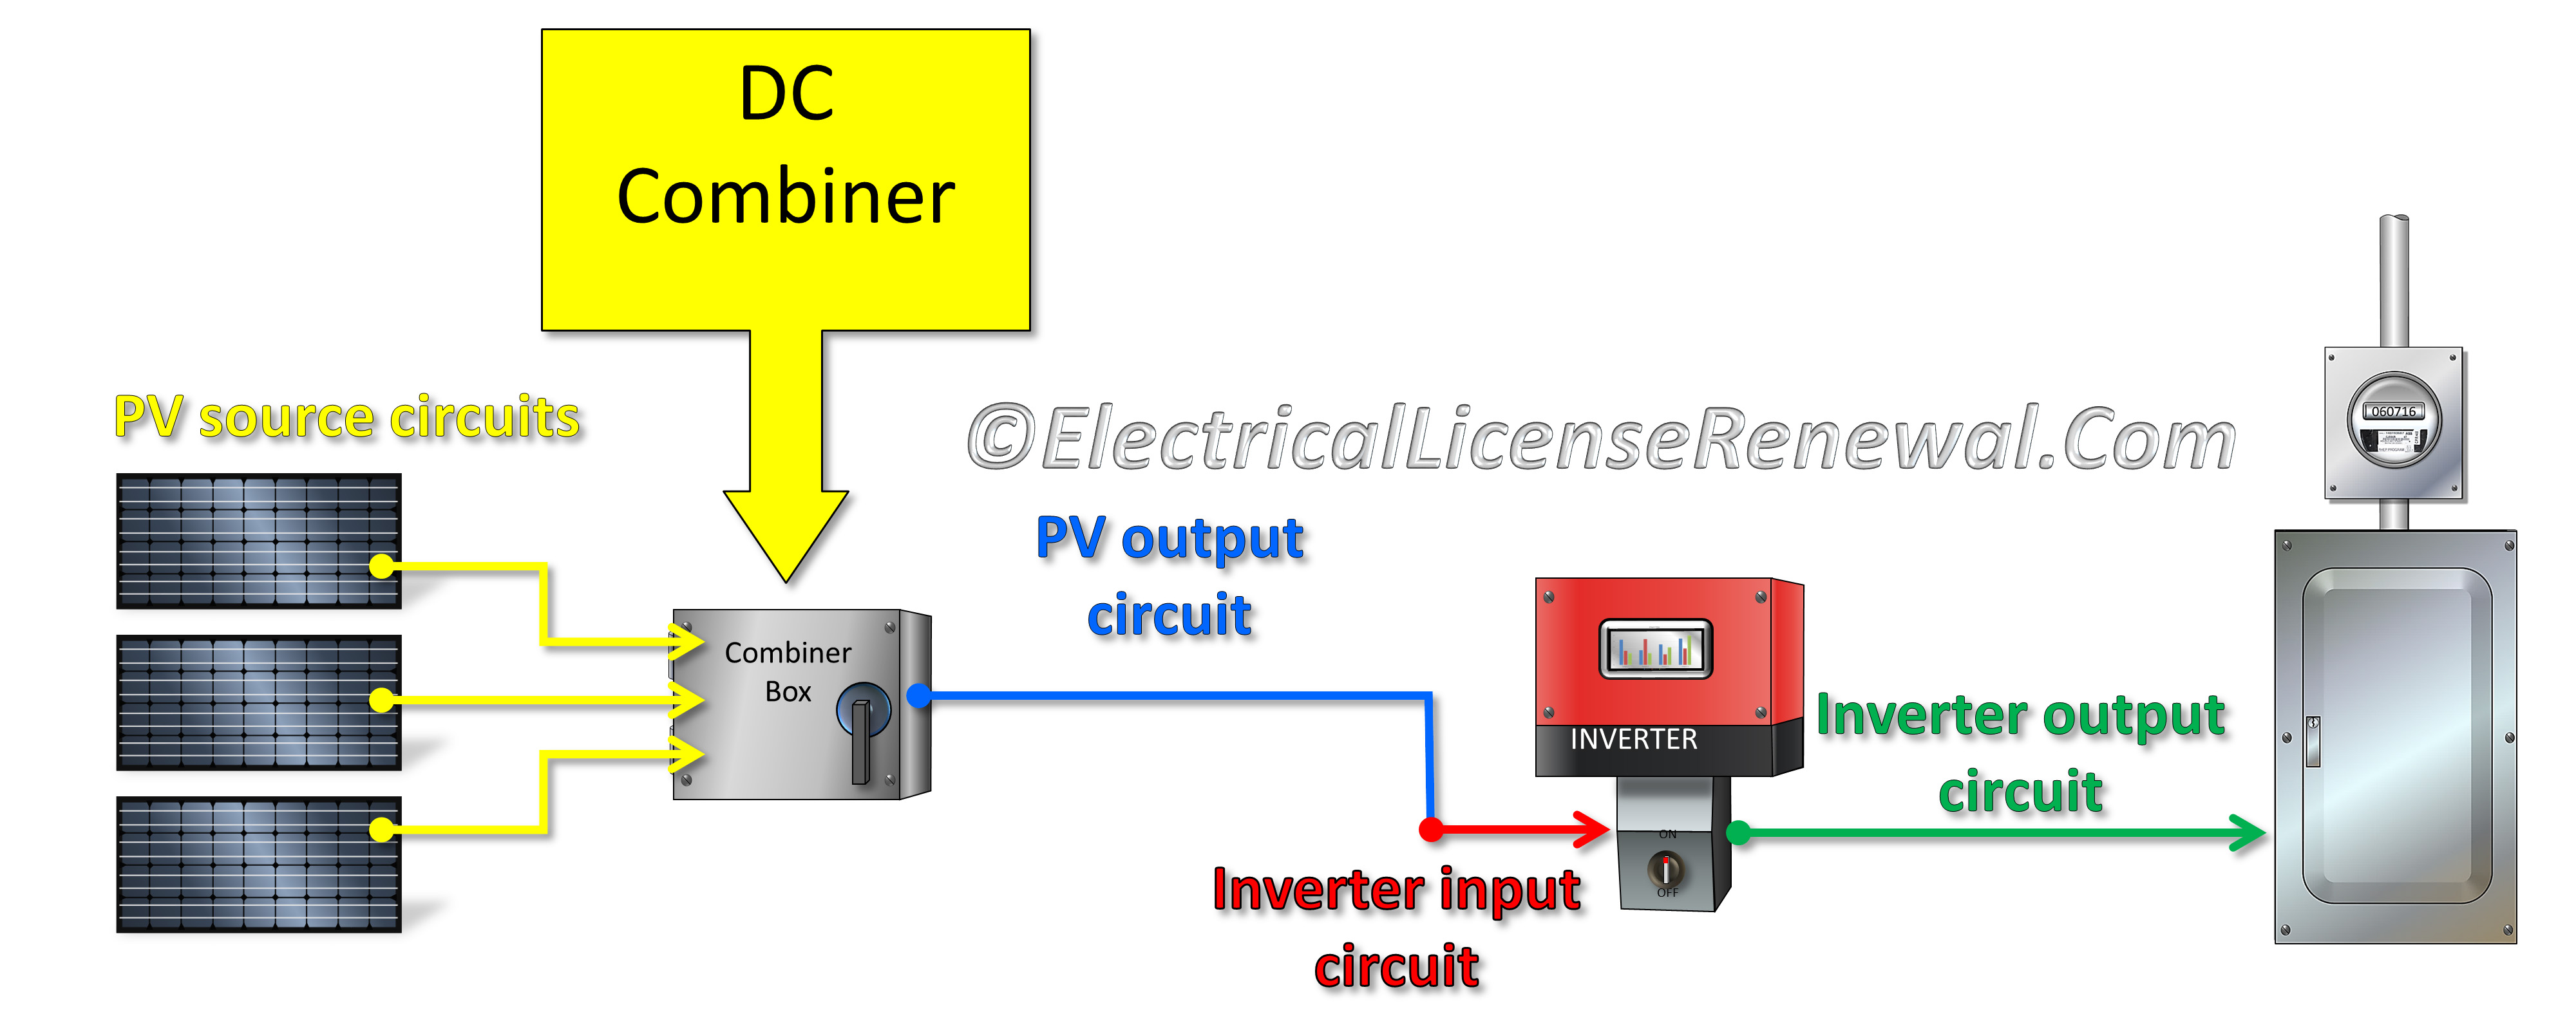 6902 Pv Definitions Direct Current Dc Combiner Constant Circuit Diagram Electronic Circuits